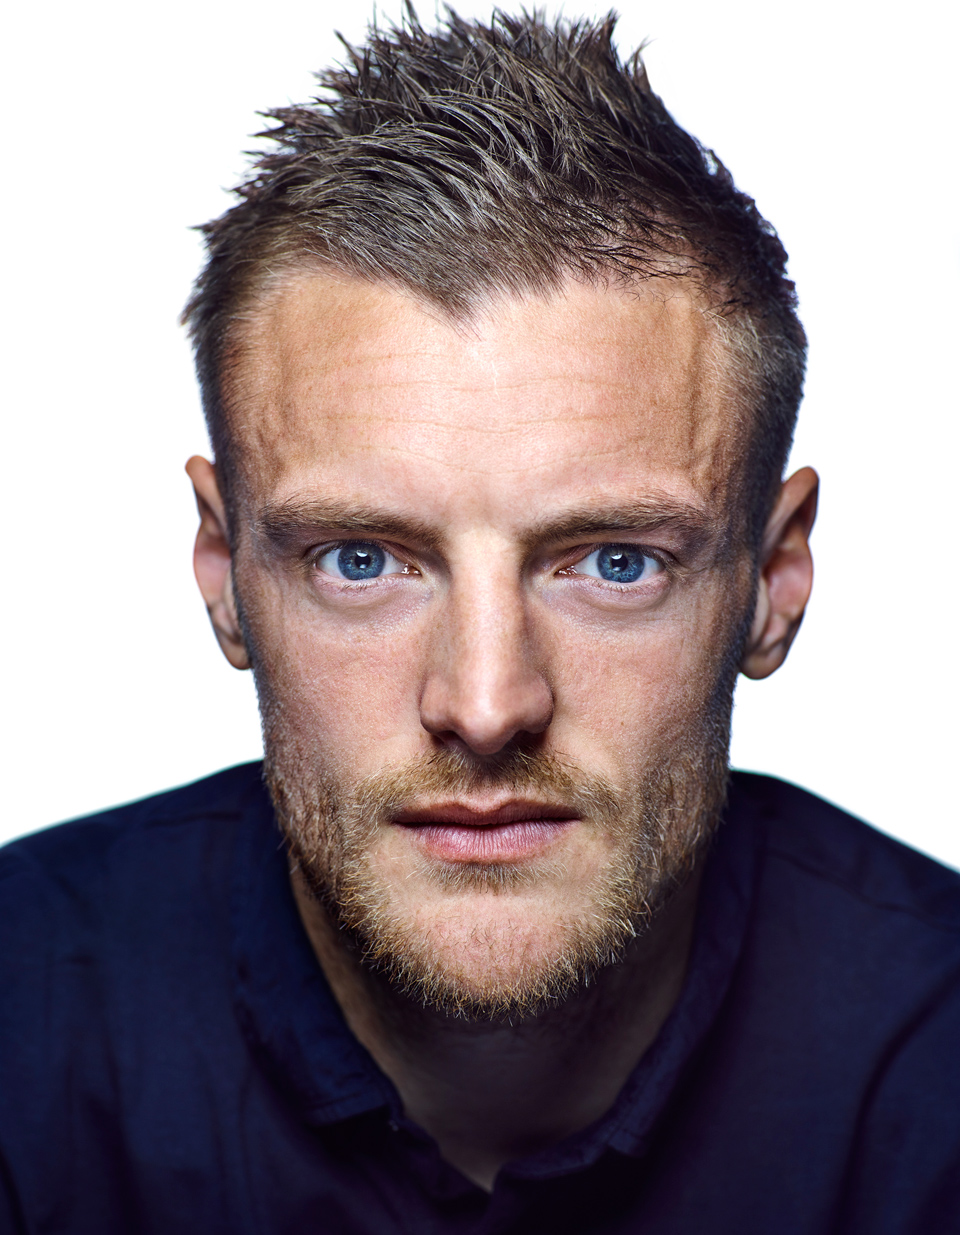 10-things-you-may-not-know-about-jamie-vardy-960